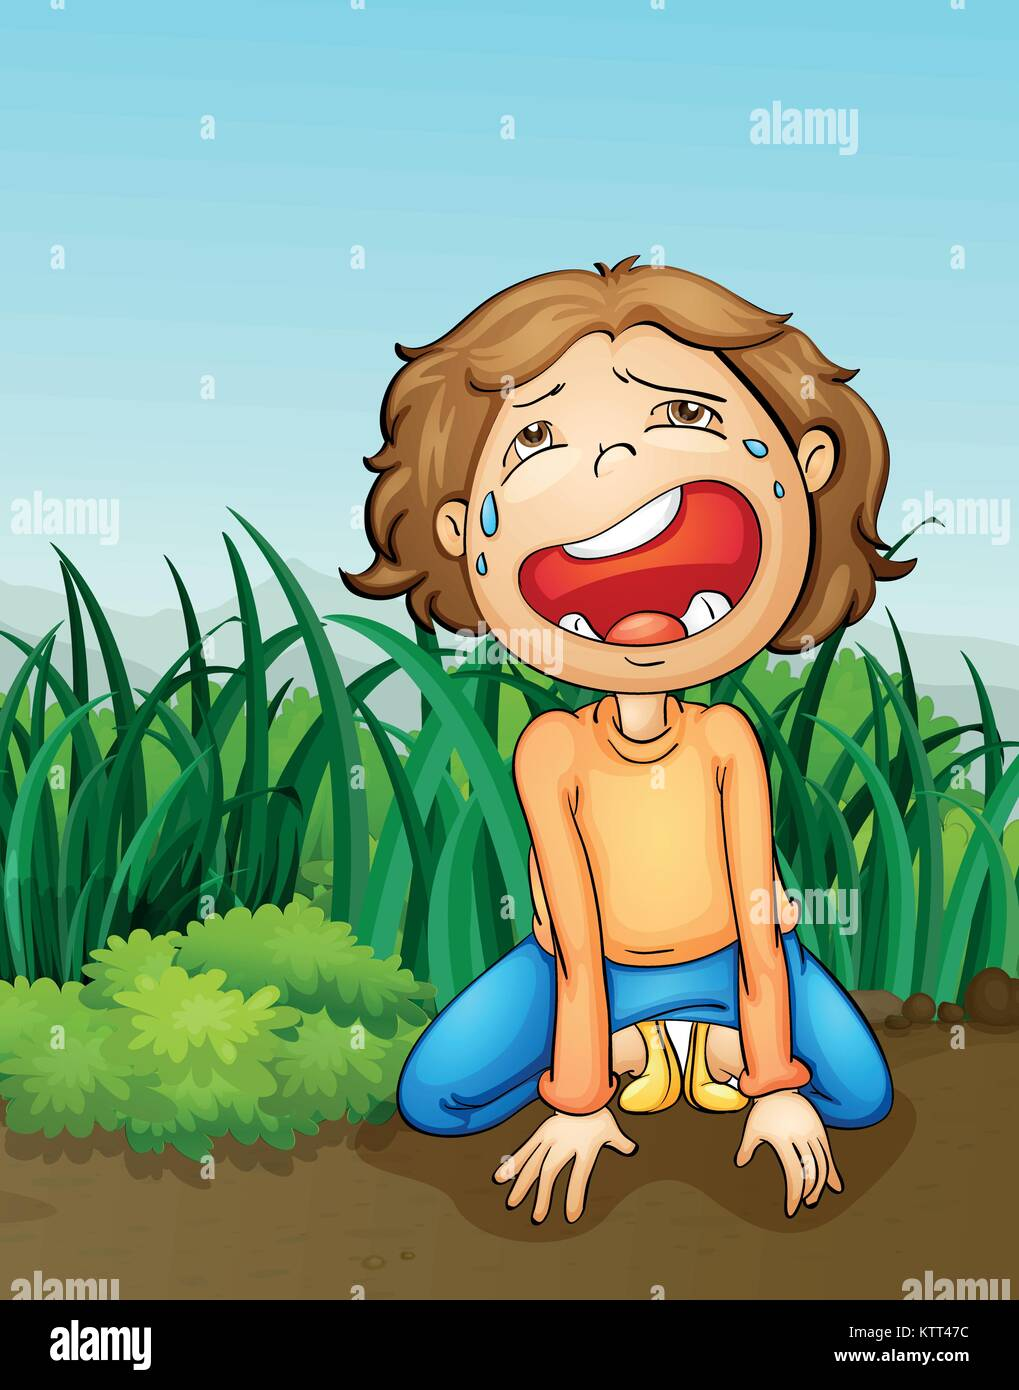 illustration of a outdoor boy crying alone - Stock Vector